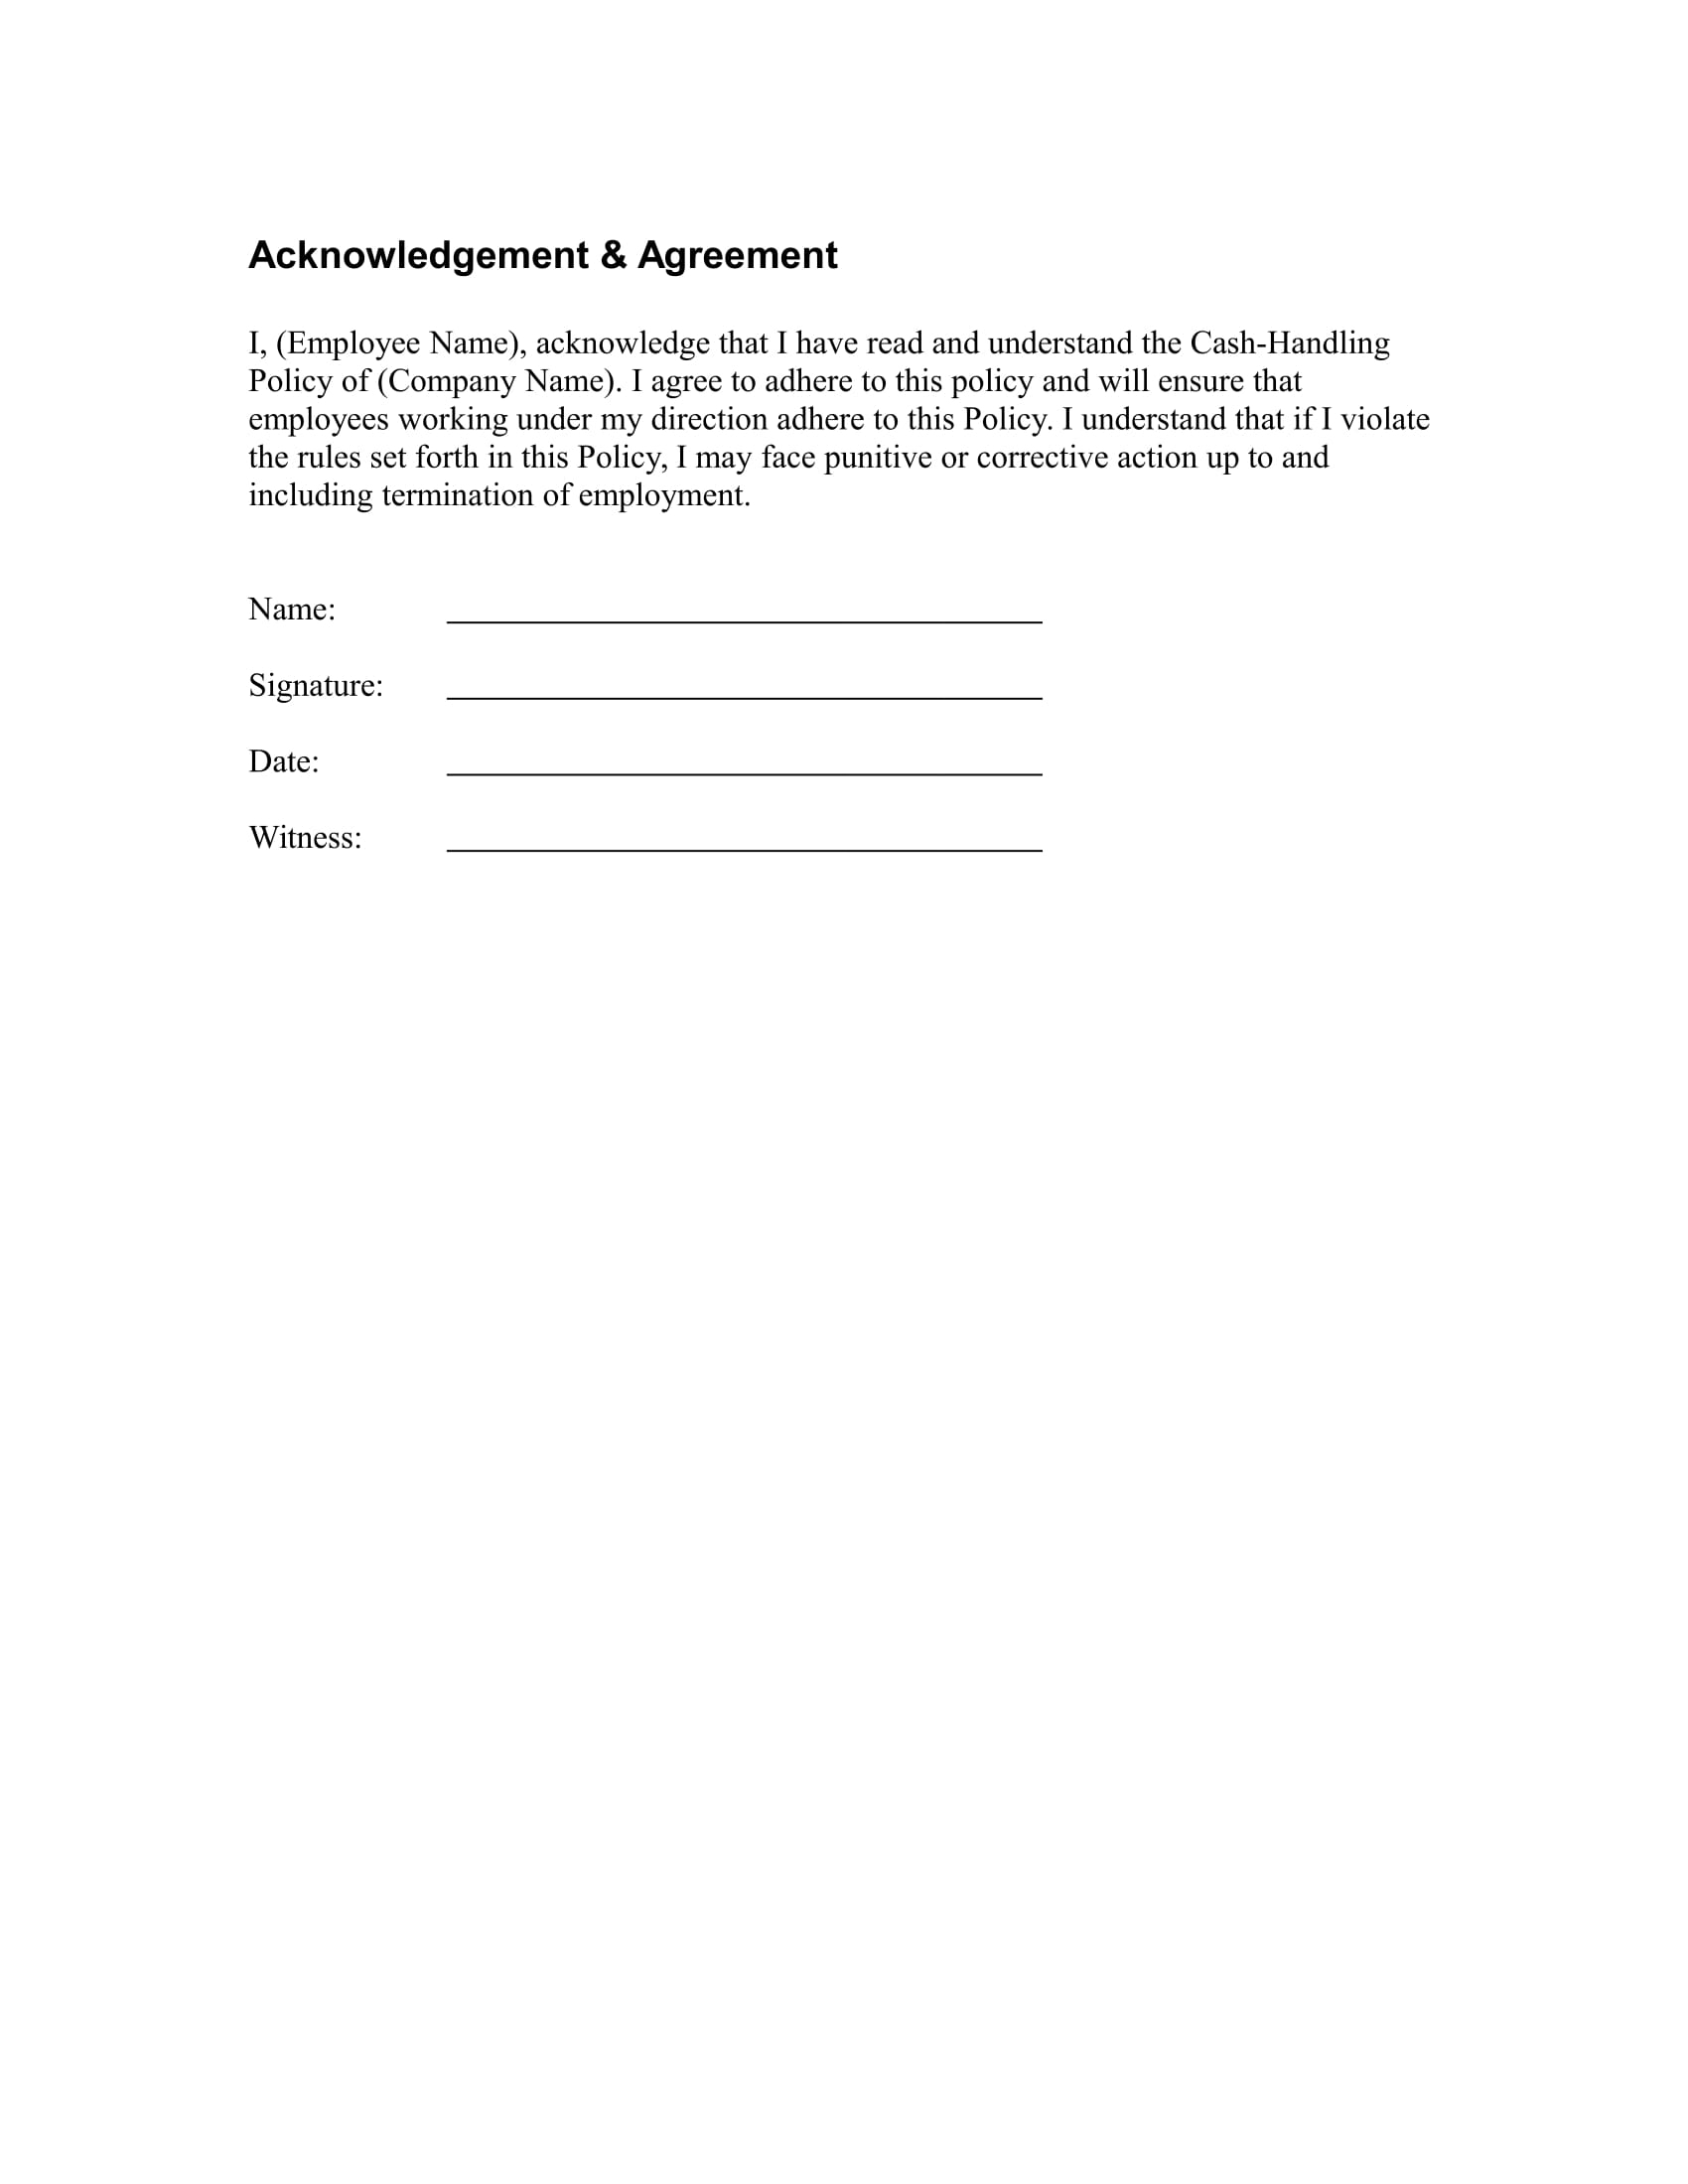 cash handling policy template